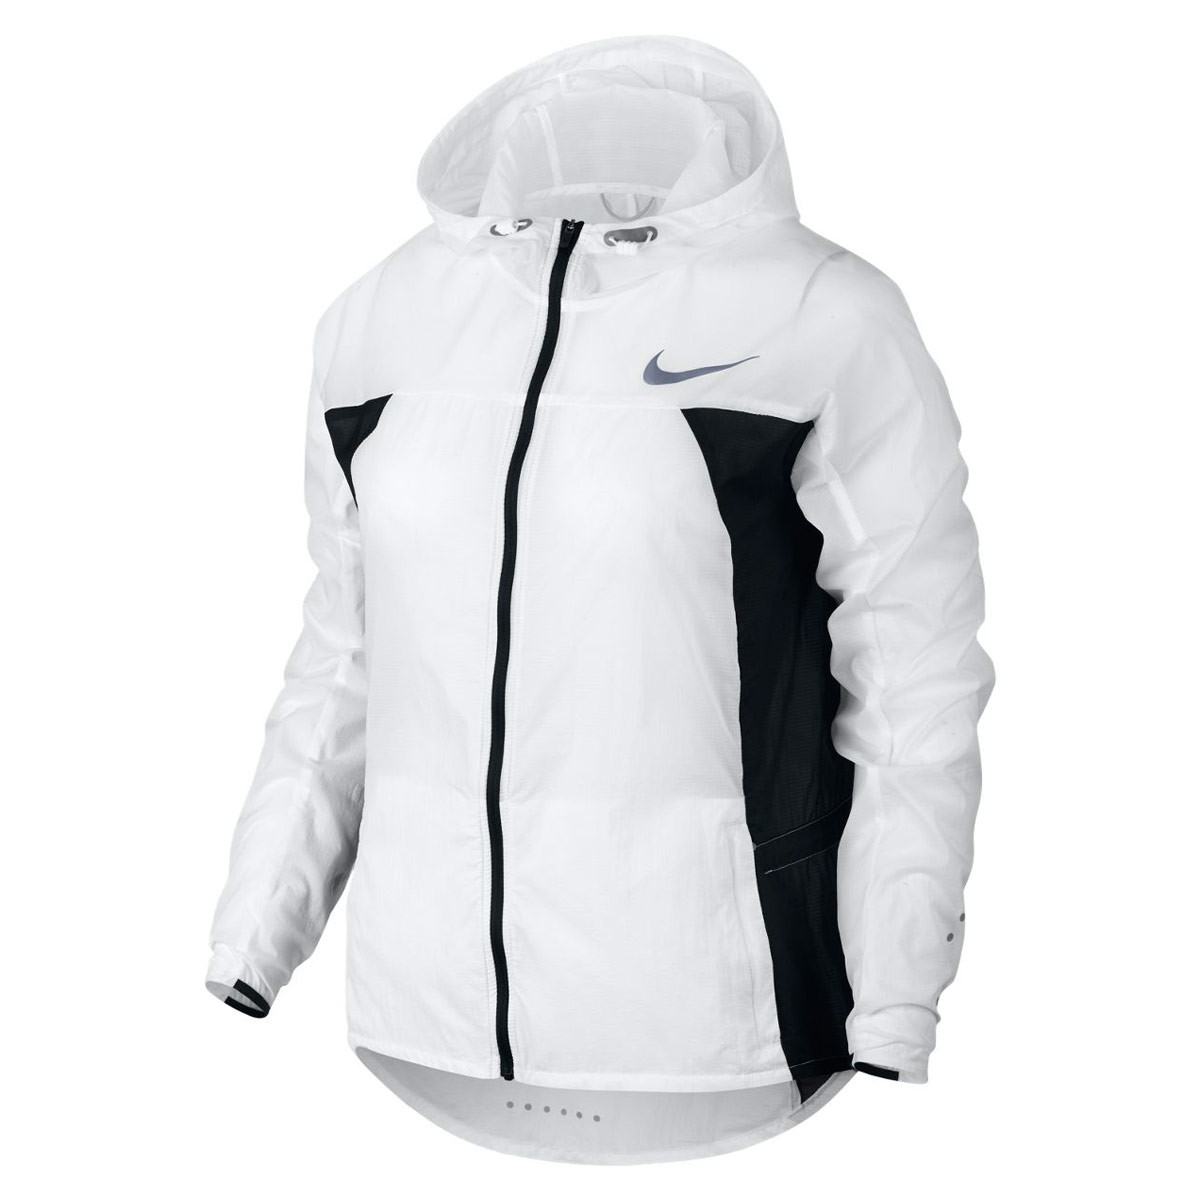 Light Impossibly Nike Pour Jacket Hooded Running Course Vestes gqfd756